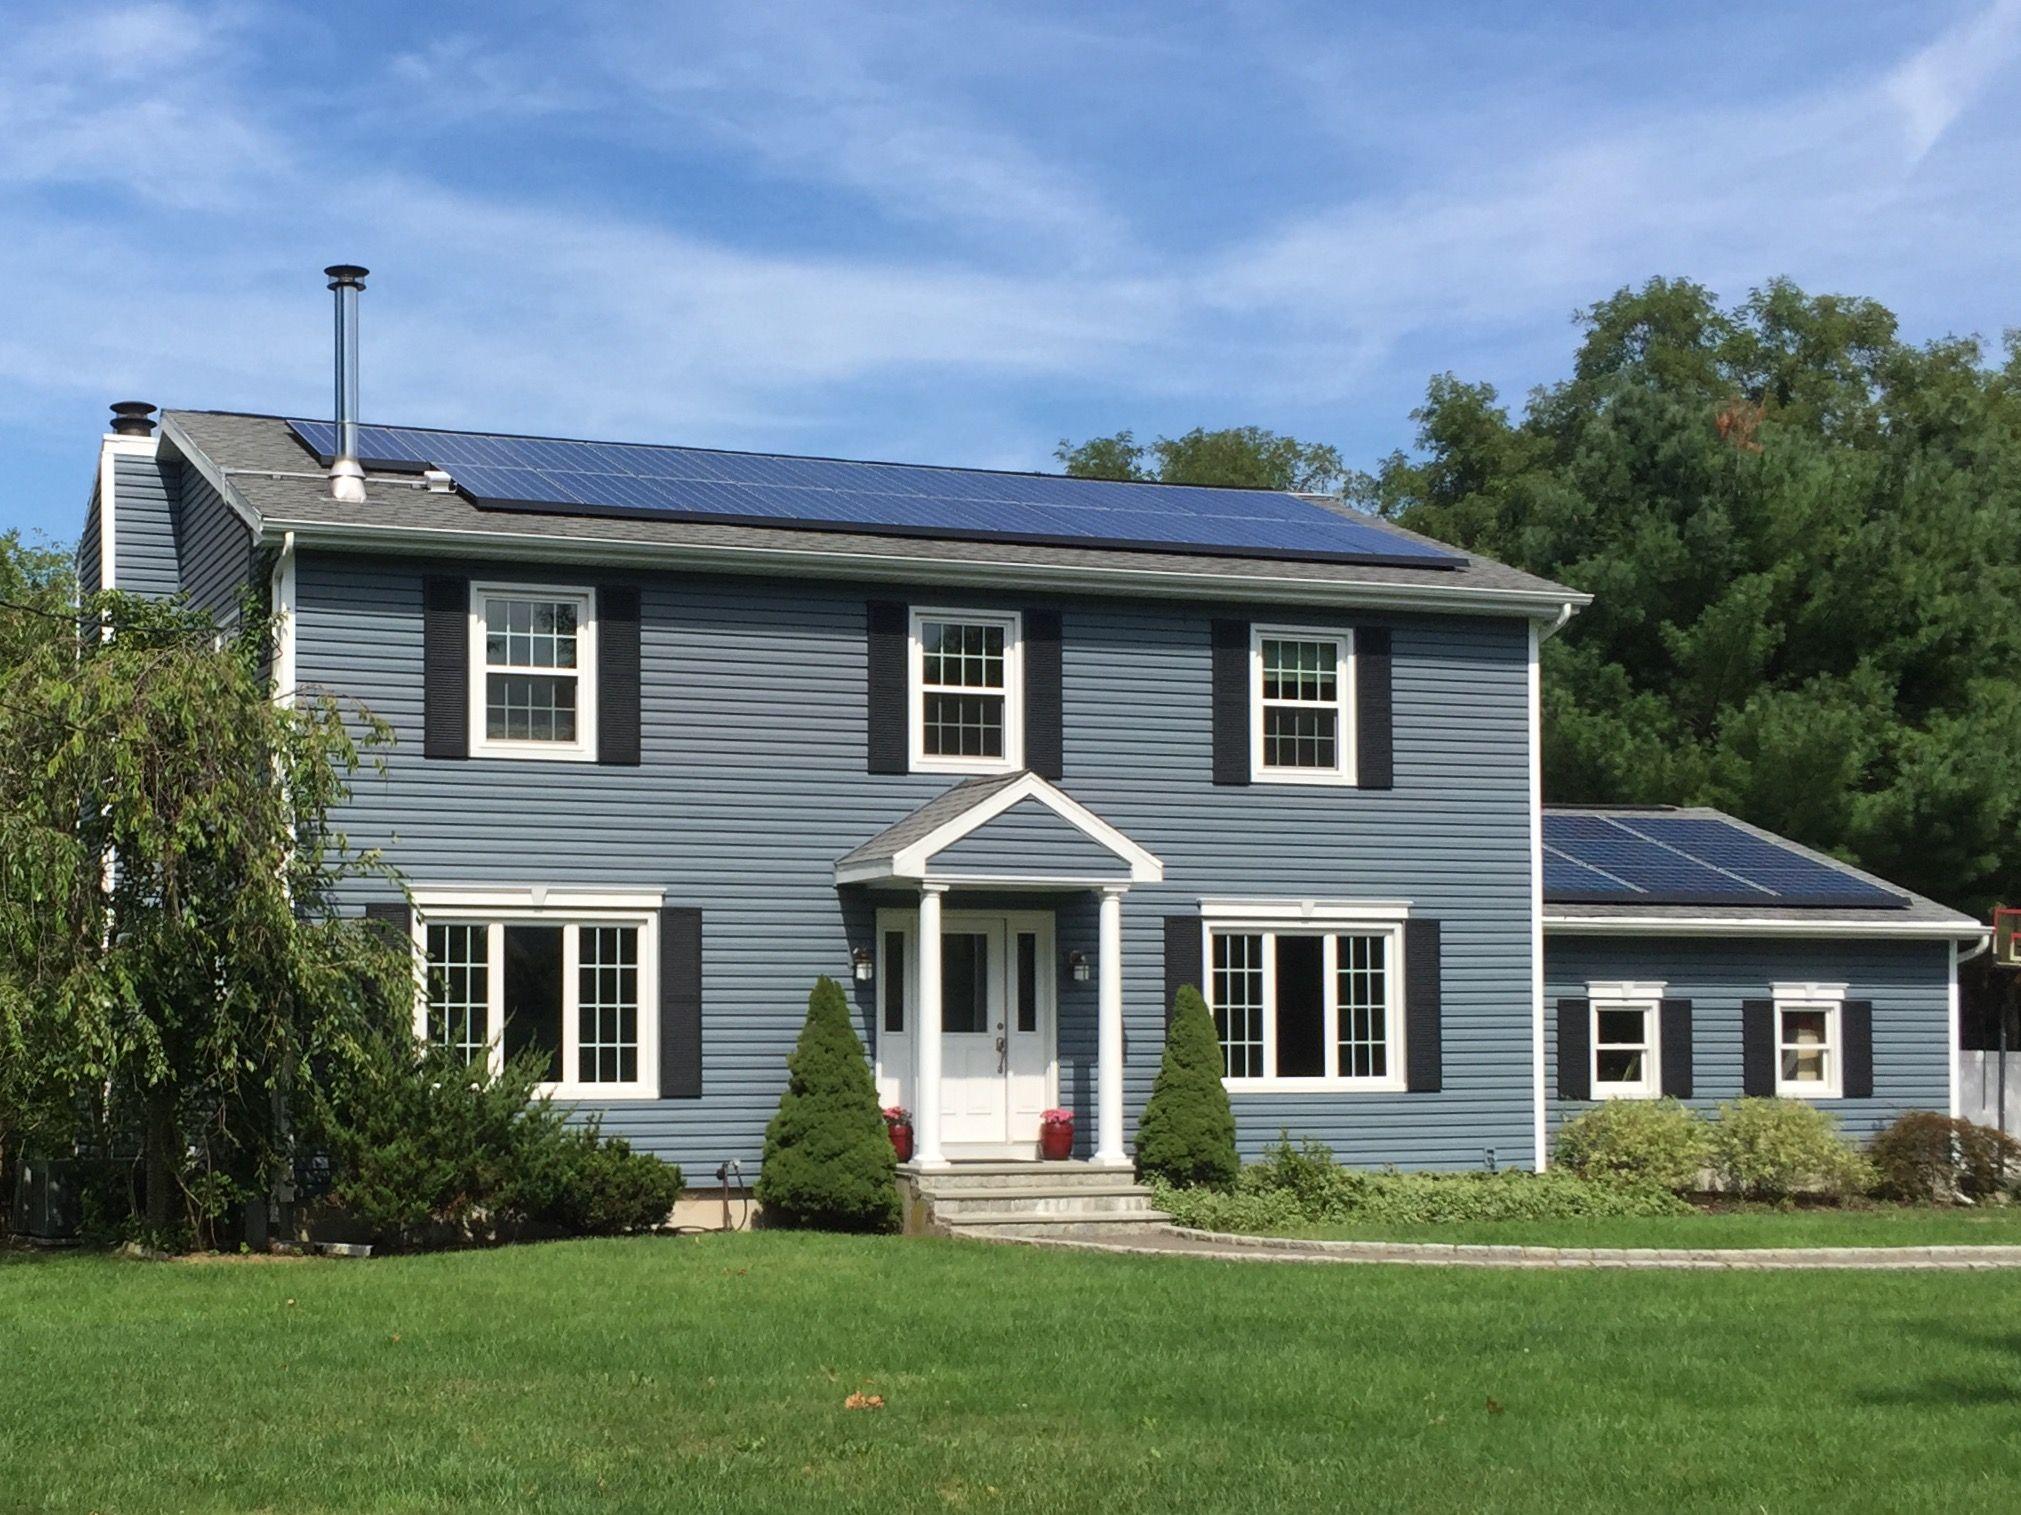 Best Harbor Blue Siding House Pinterest Blue Siding 400 x 300